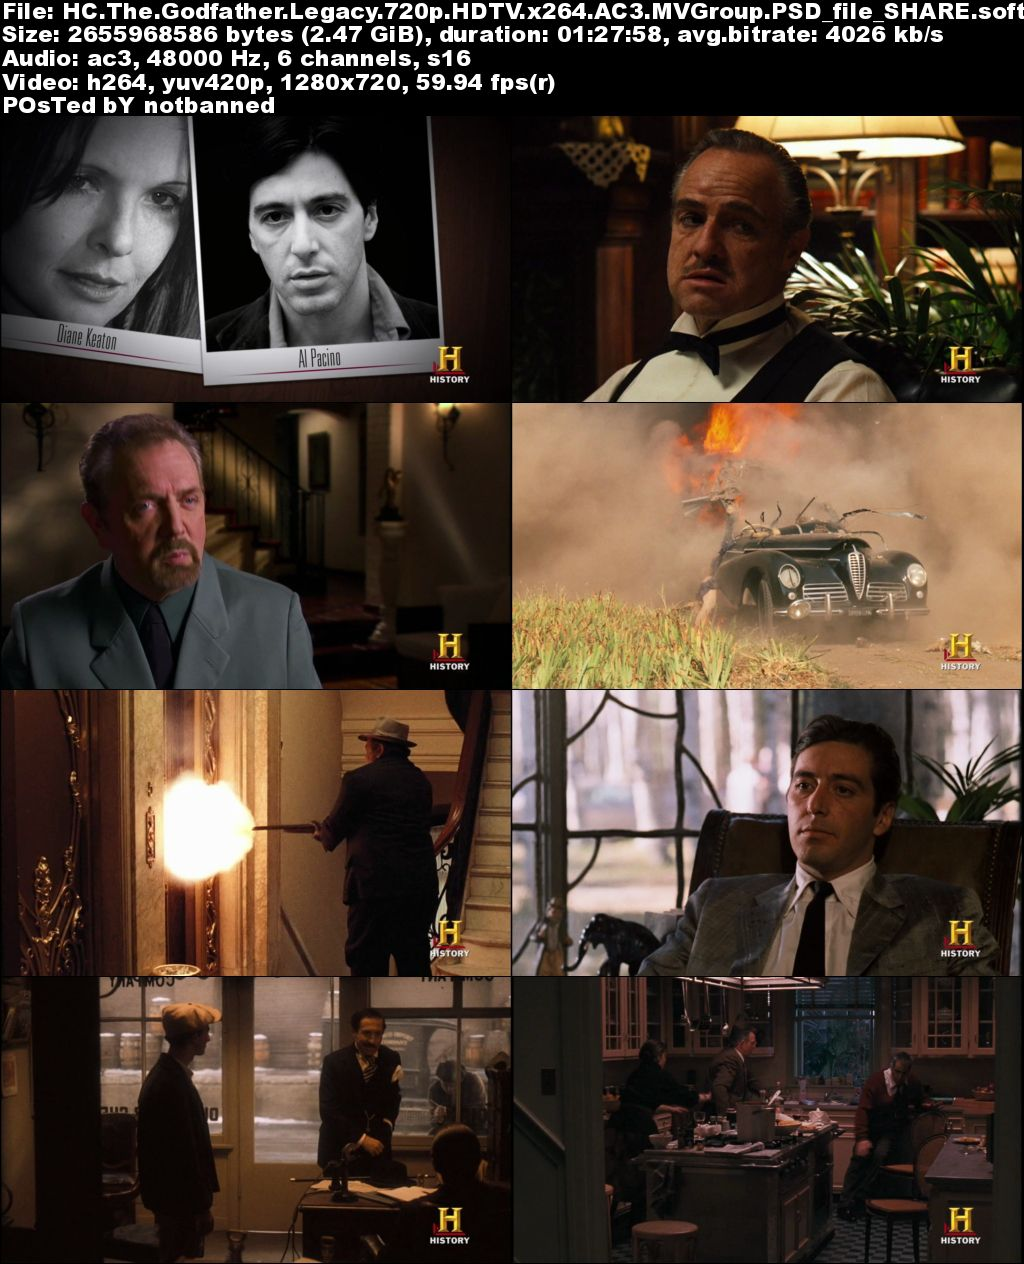 History Channel - The Godfather Legacy (2012) 720p HDTV x264-MVGroup